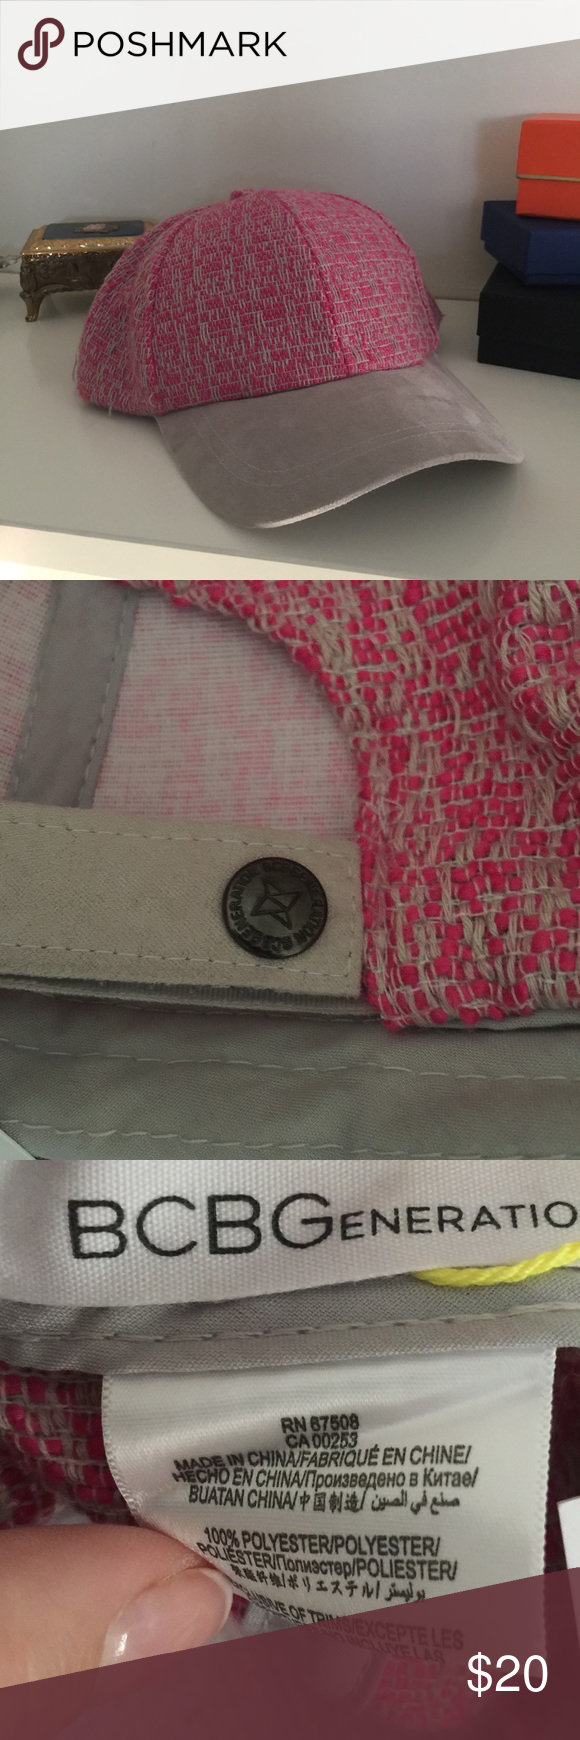 BCBG Pink & Gray Woven Hat w/ Suede brim • NWOT BCBG Pink & Gray Woven Hat w/ Suede brim • Velcro Adjustable Back • NWOT • LOVE 💕 the item, but not the price? Send me a reasonable offer through the offer button! 🔵  S😢RRY, Offers will NOT be negotiated through comments  Smoke FREE 🚭 Pet FREE Home Sorry No 🚫Trades! N🚫 Lowball Offers Please 😉 N🚫 Transactions OFF of Poshmark  Please be considerate when posting a rating. Make sure that you have read the ENTIRE listing CAREFULLY PRIOR to…